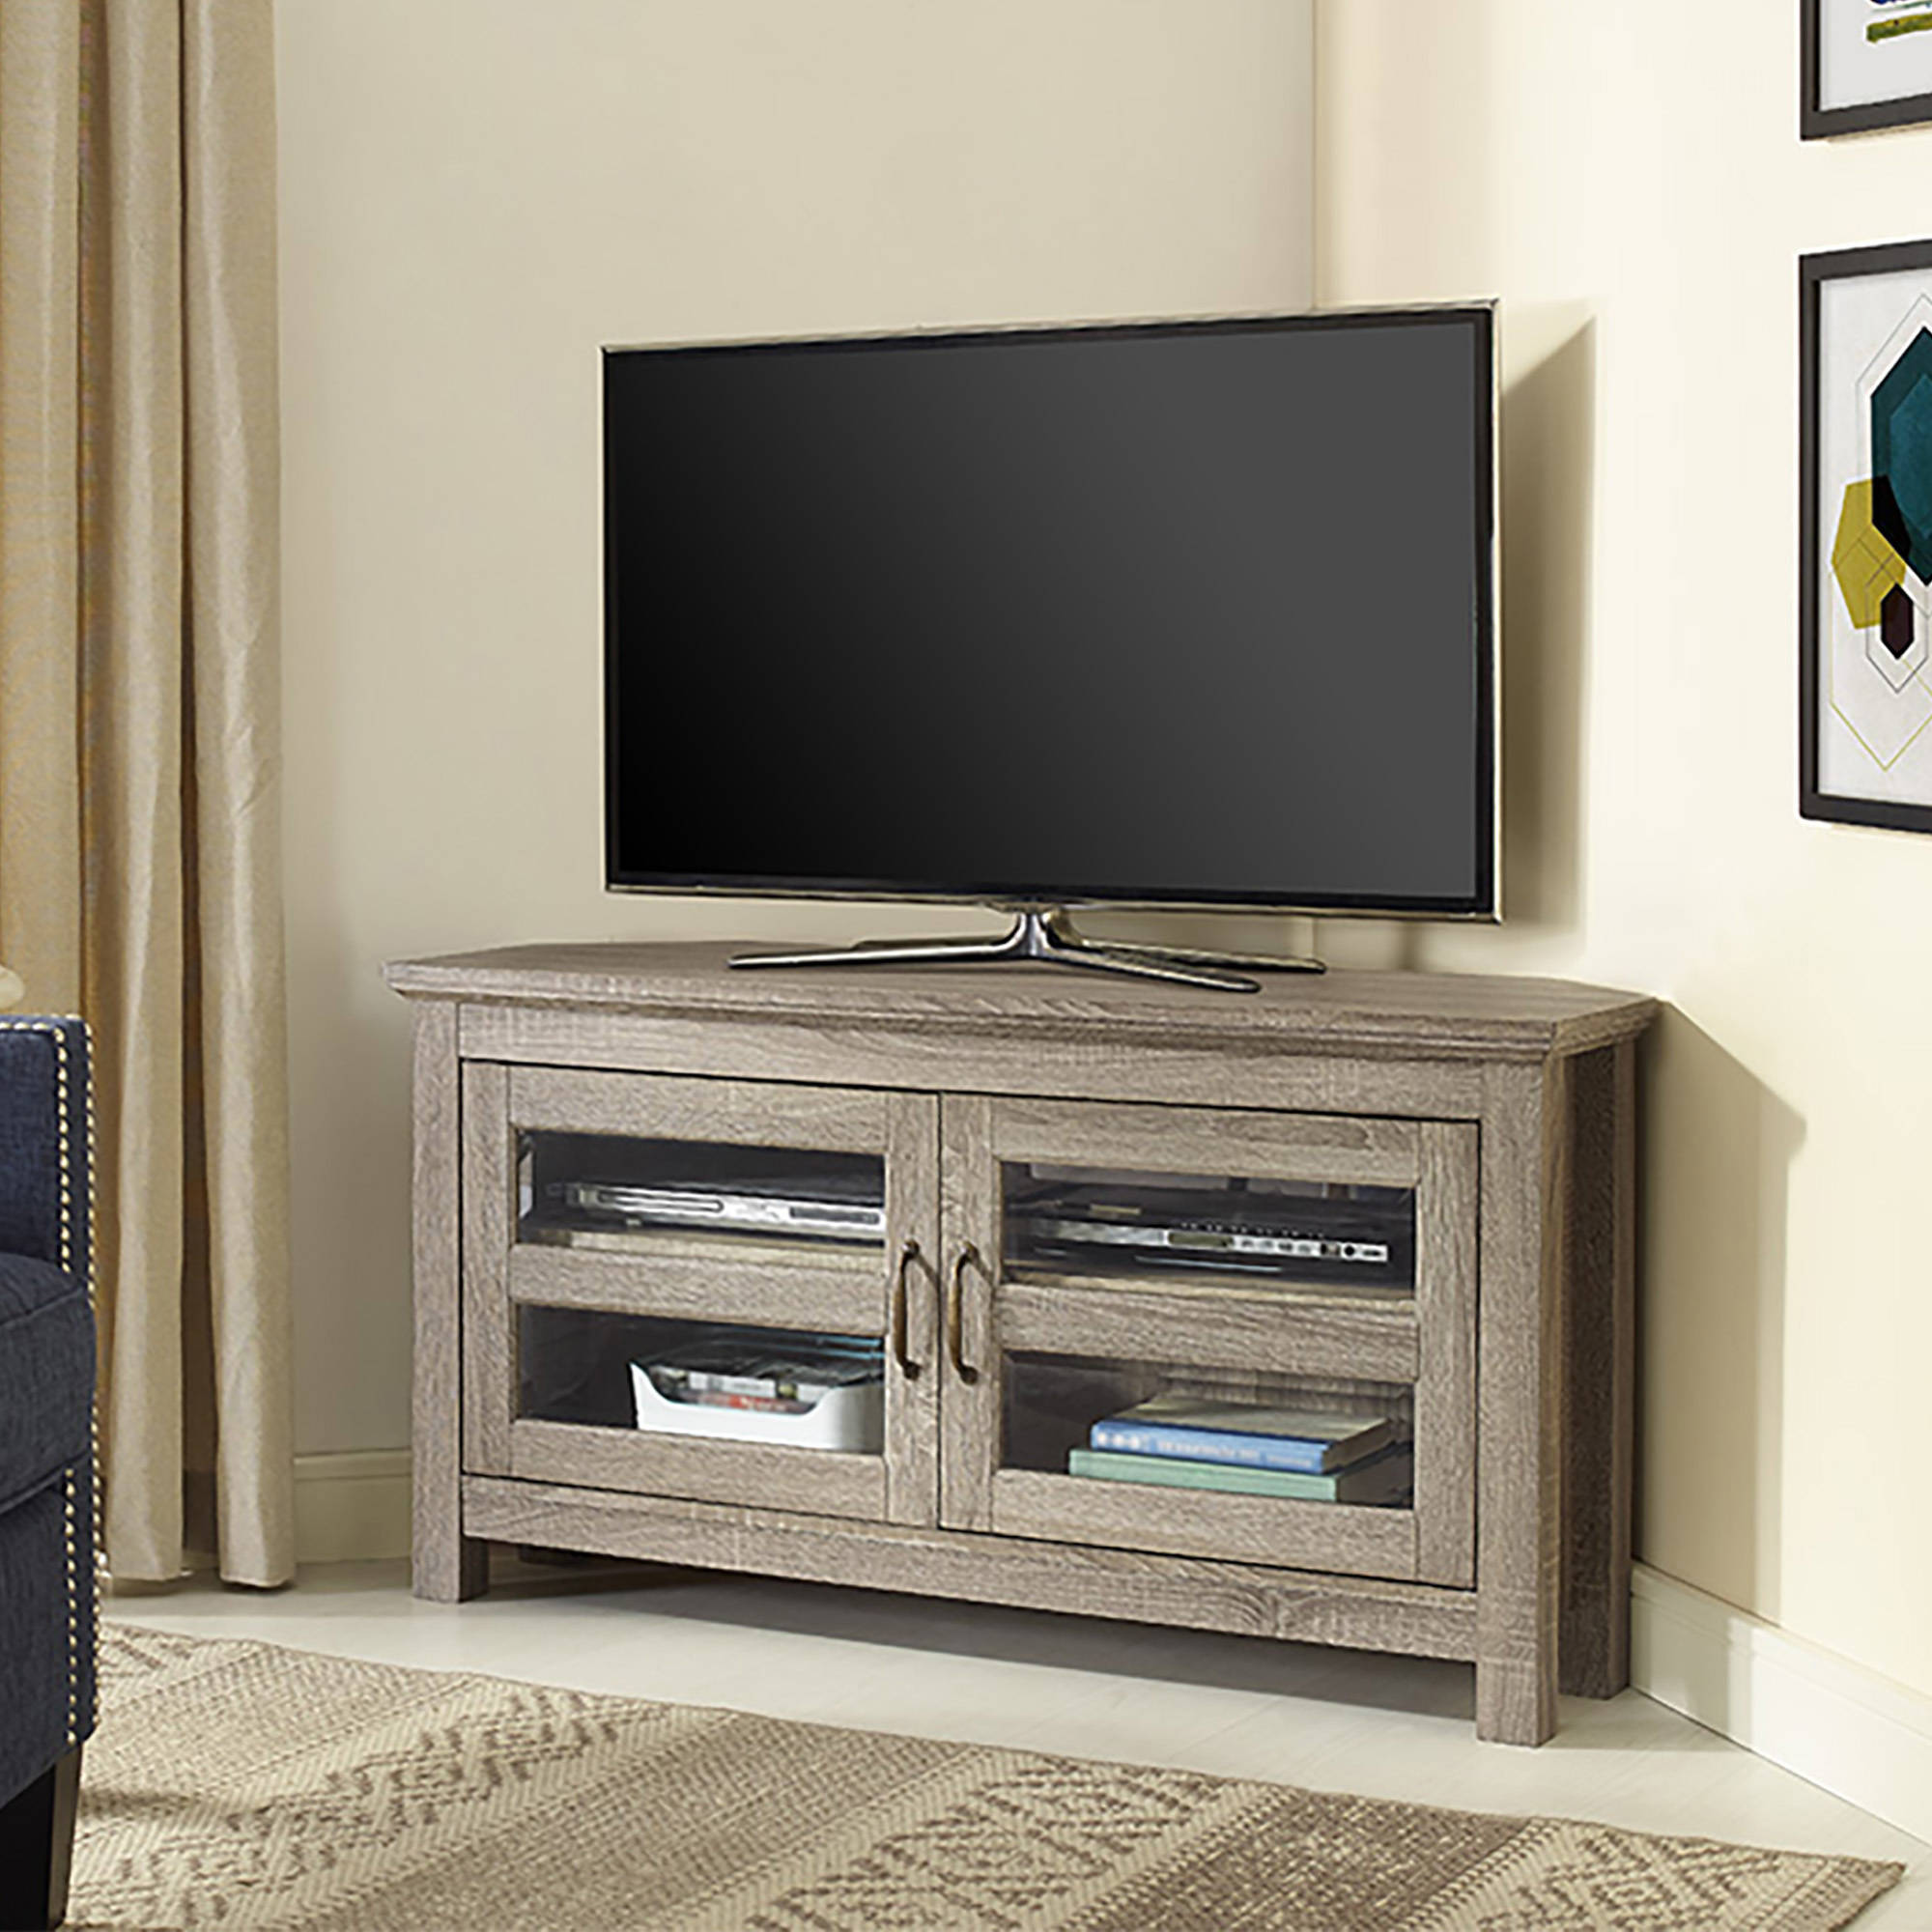 walker edison black corner tv stand for tvs up to 48. Black Bedroom Furniture Sets. Home Design Ideas